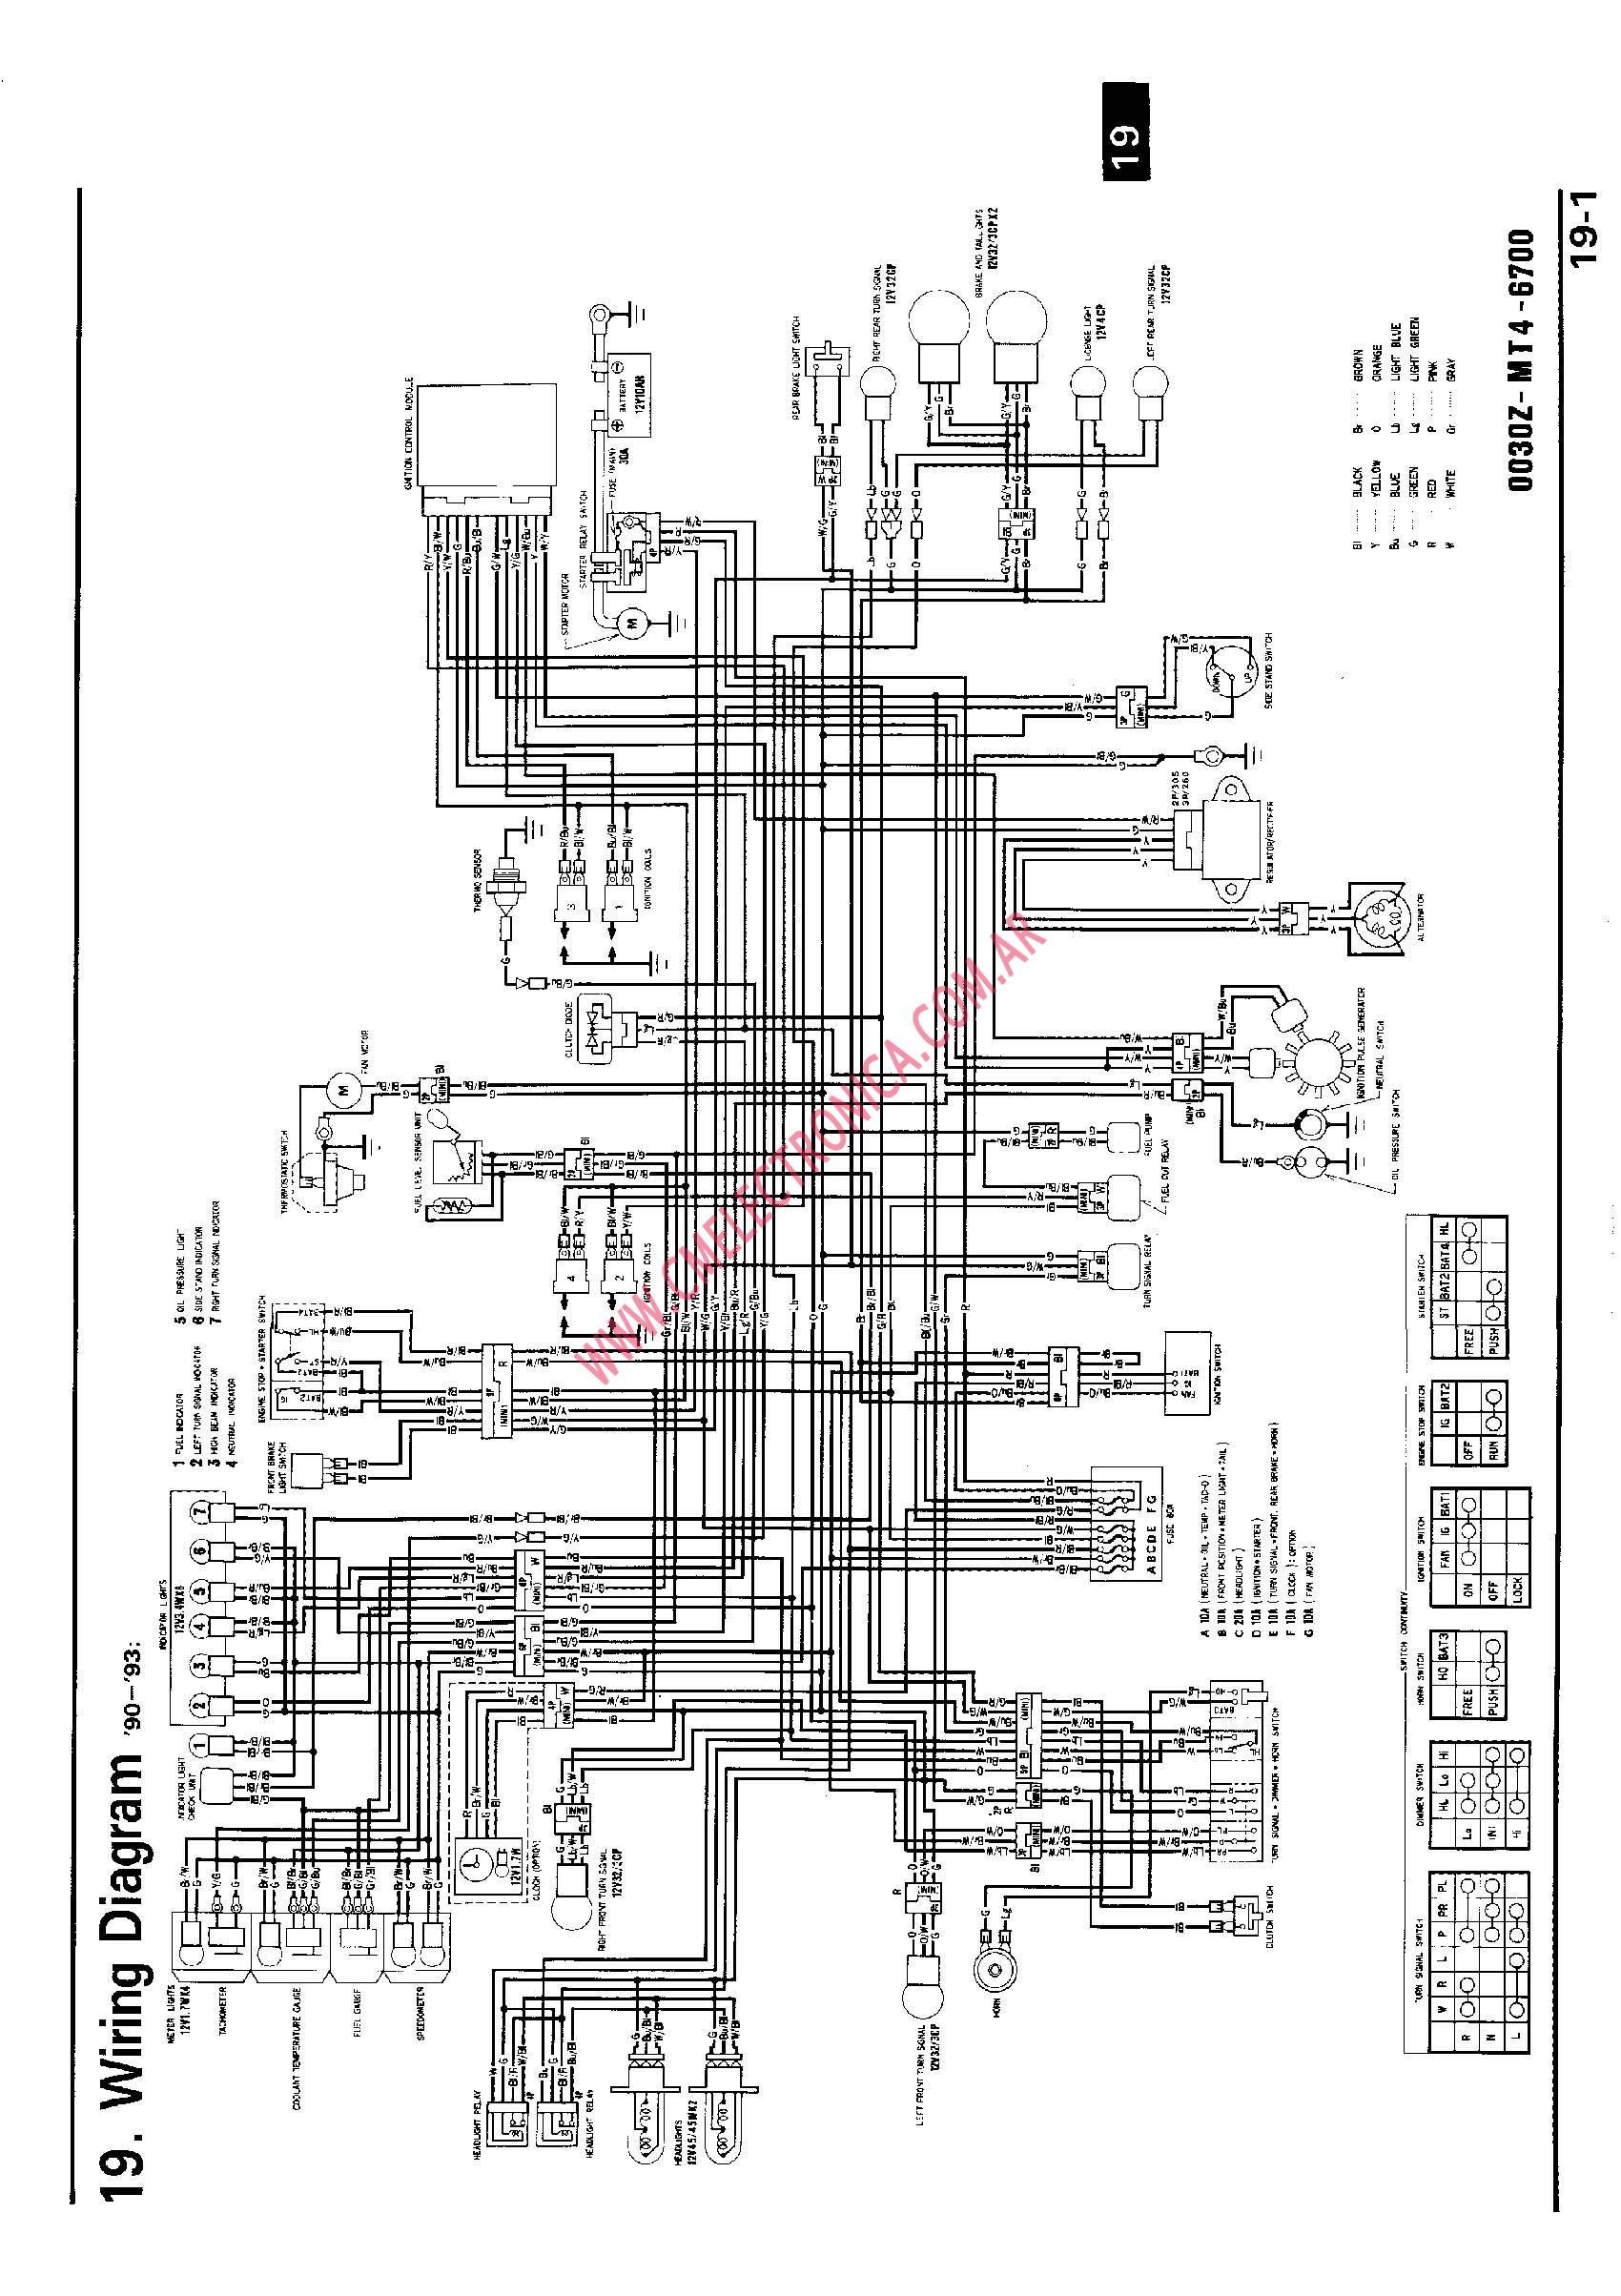 honda bf75 wiring diagram honda wiring diagrams